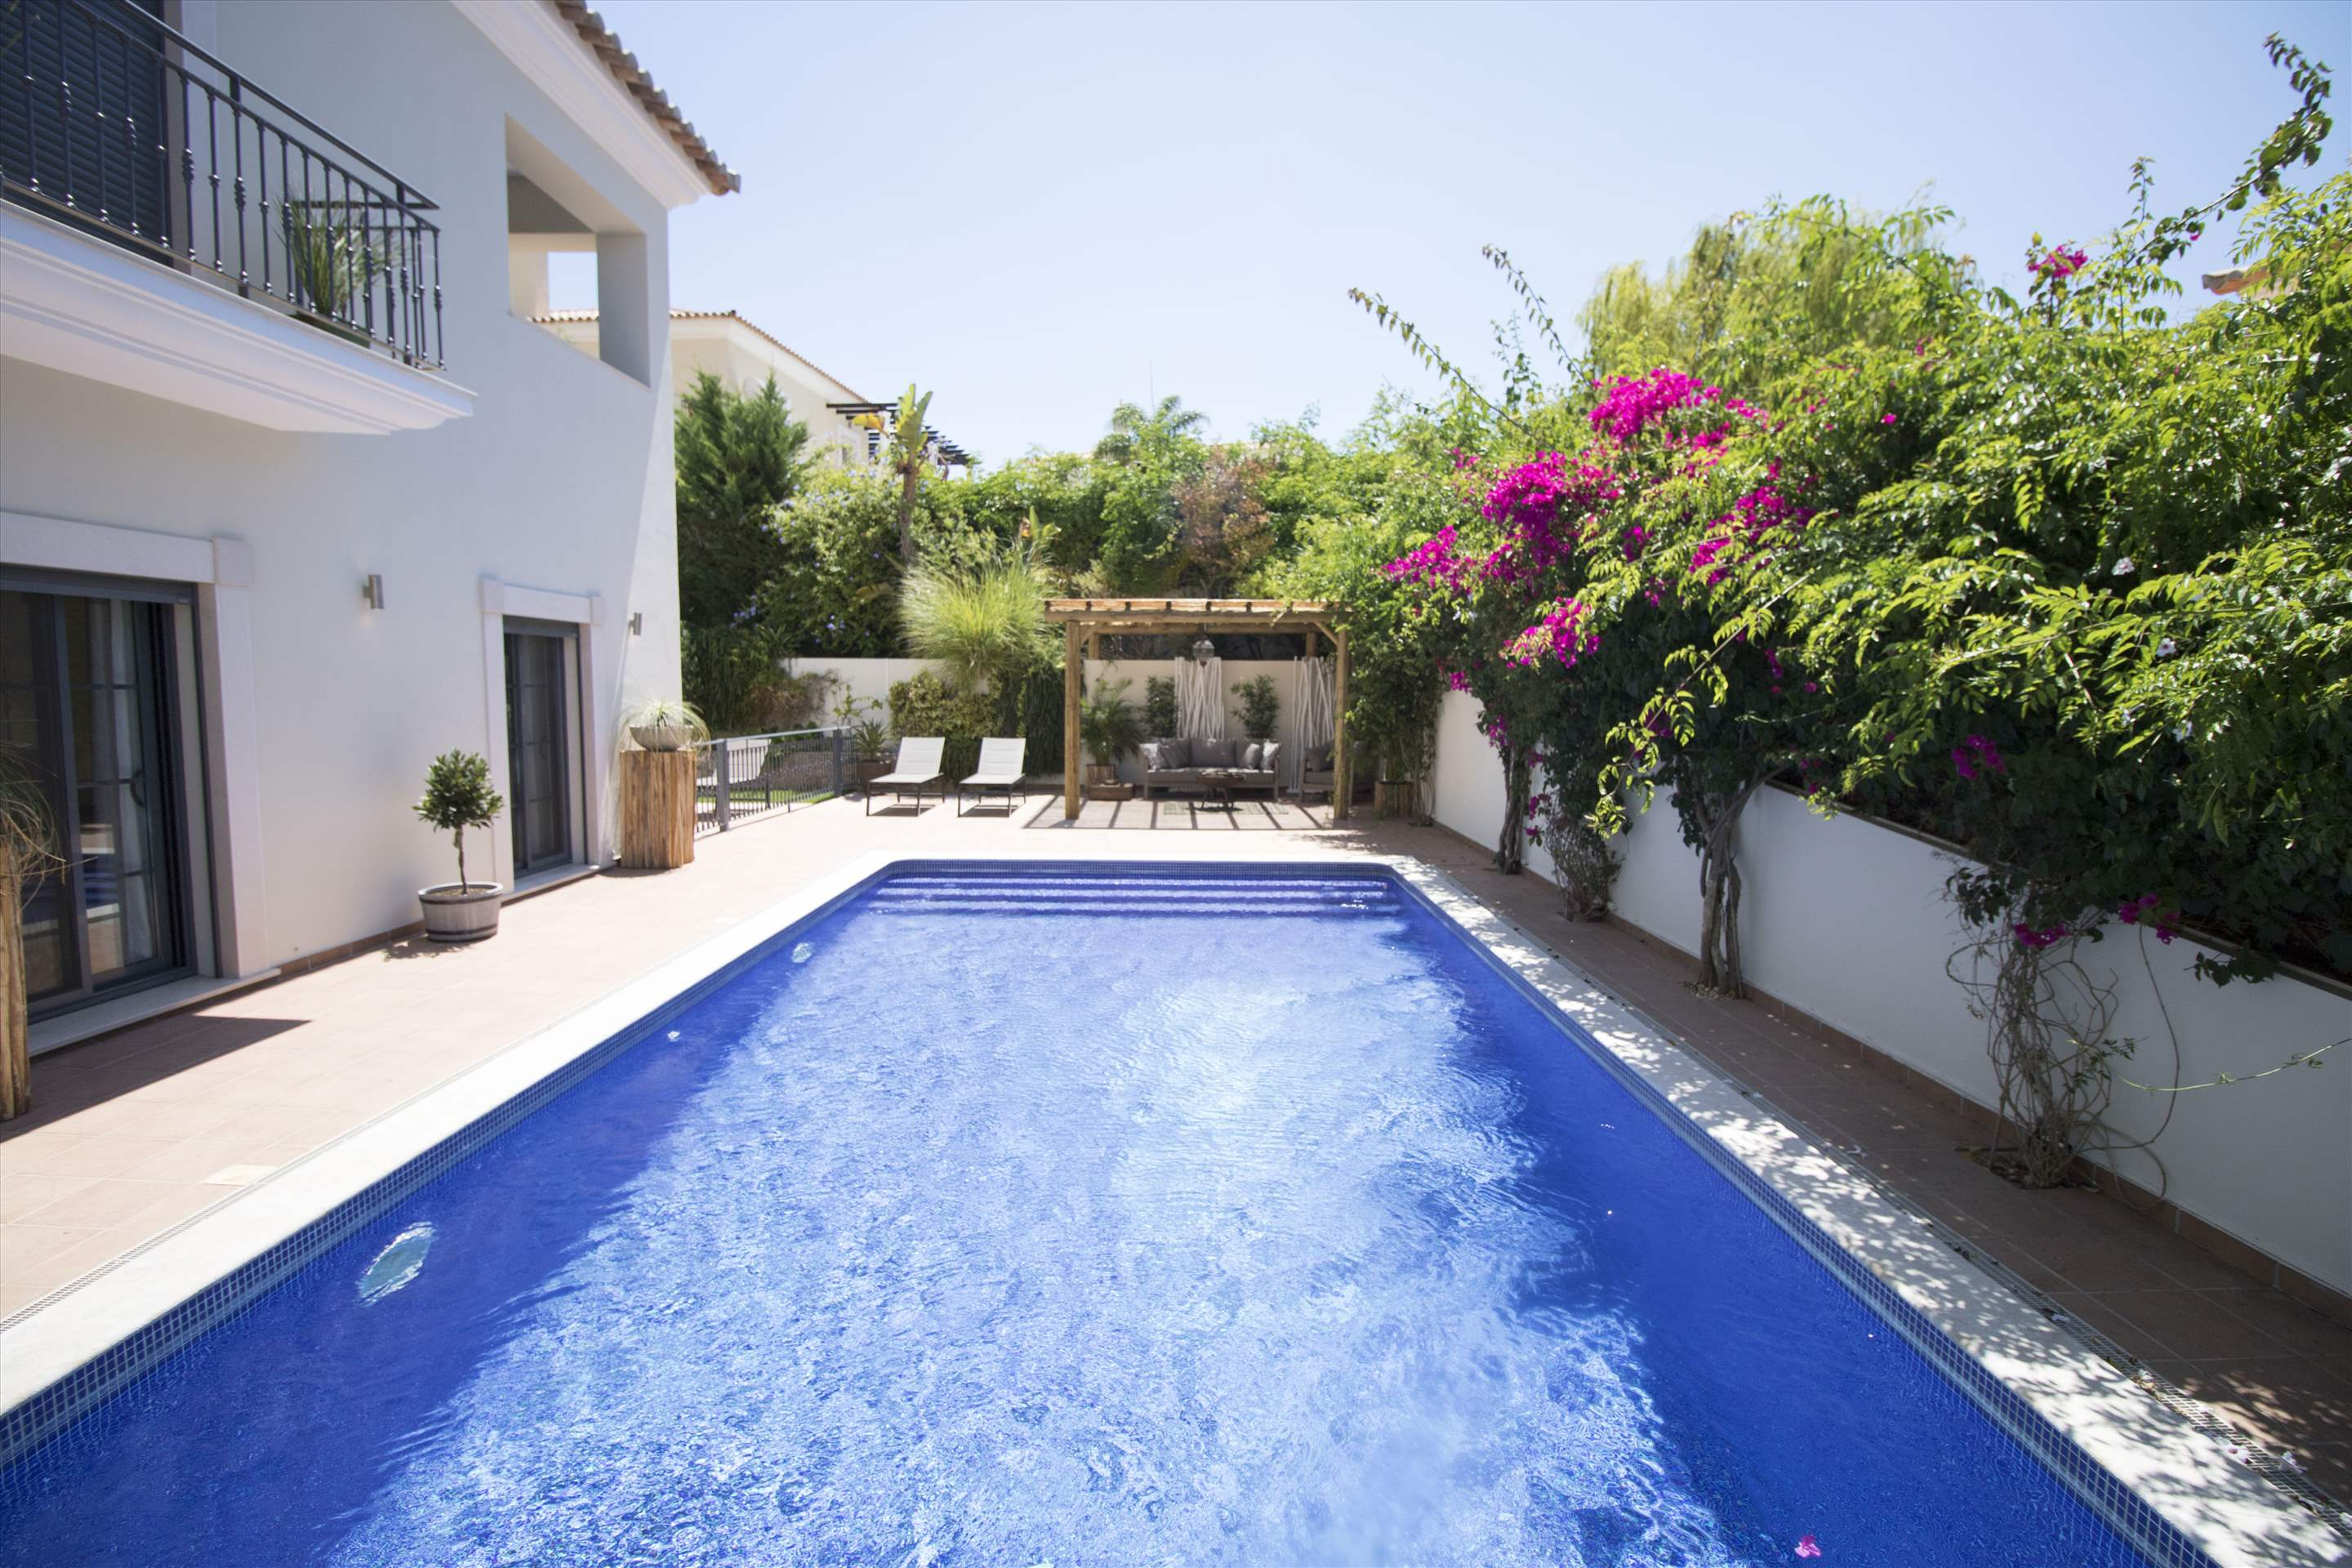 Villa Meryl, 5 bedroom villa in Vale do Lobo, Algarve